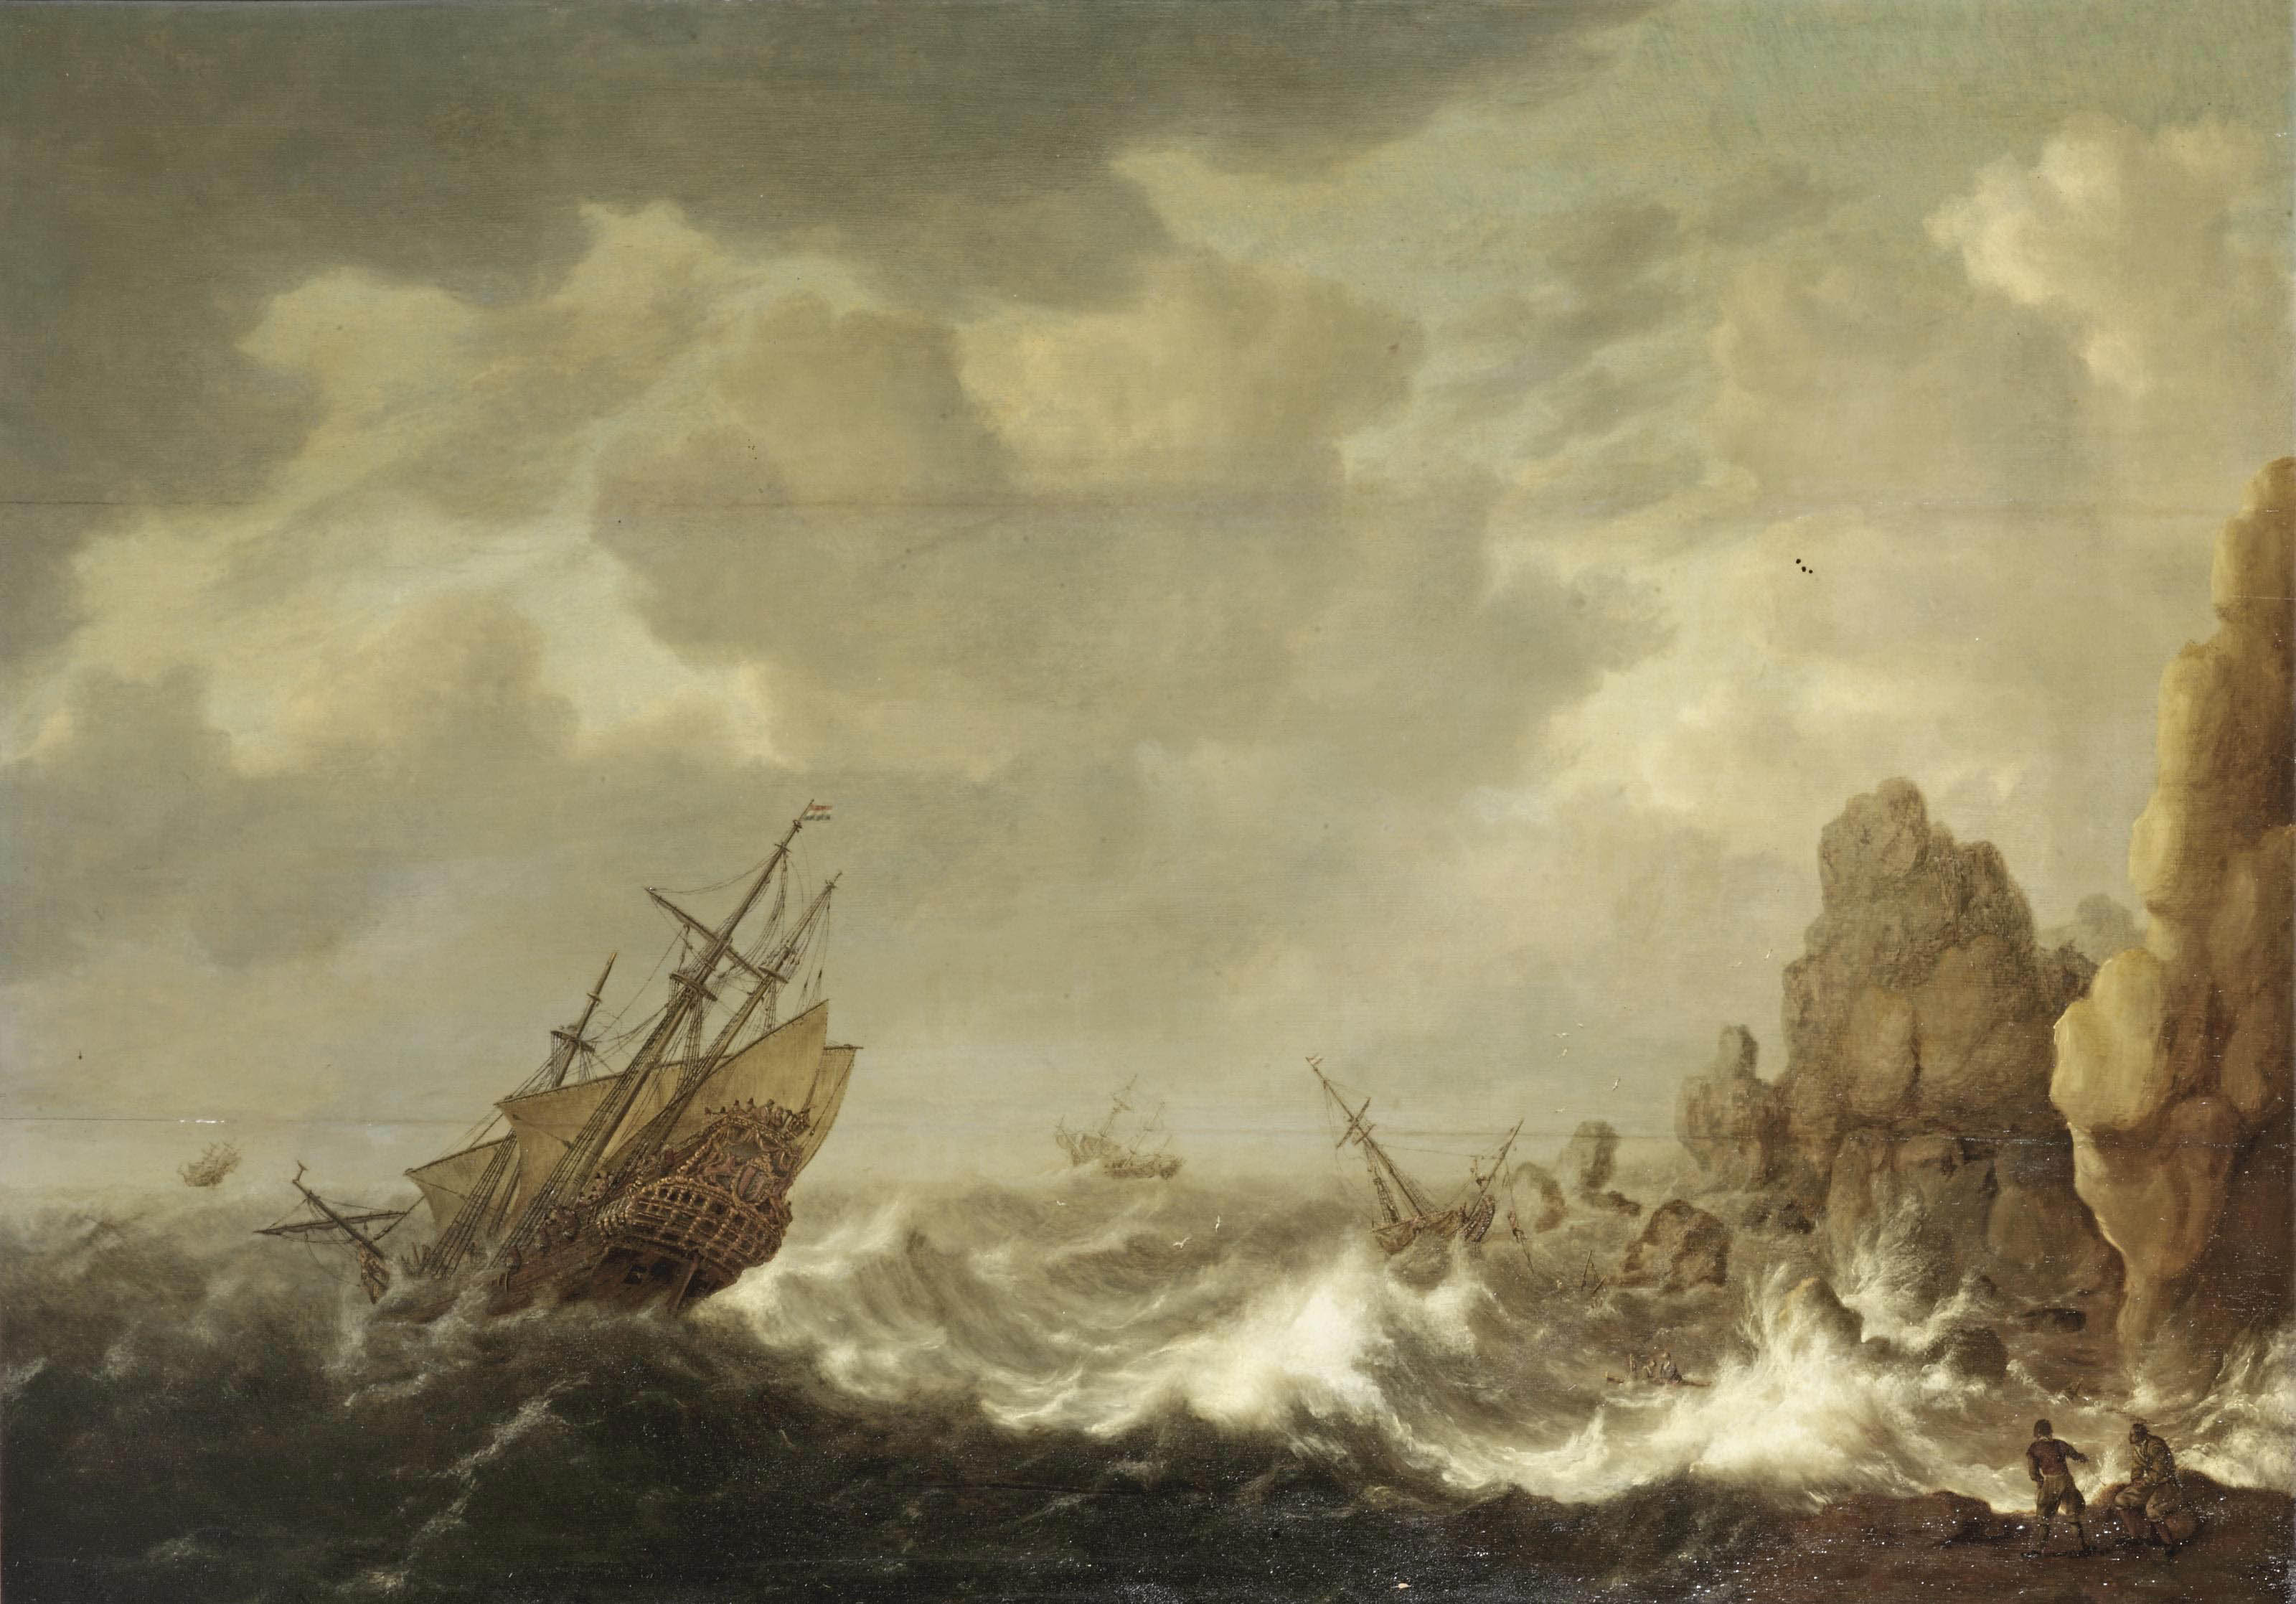 A Dutch merchant and other ships in a gale off a rocky coast, castaways in the foreground